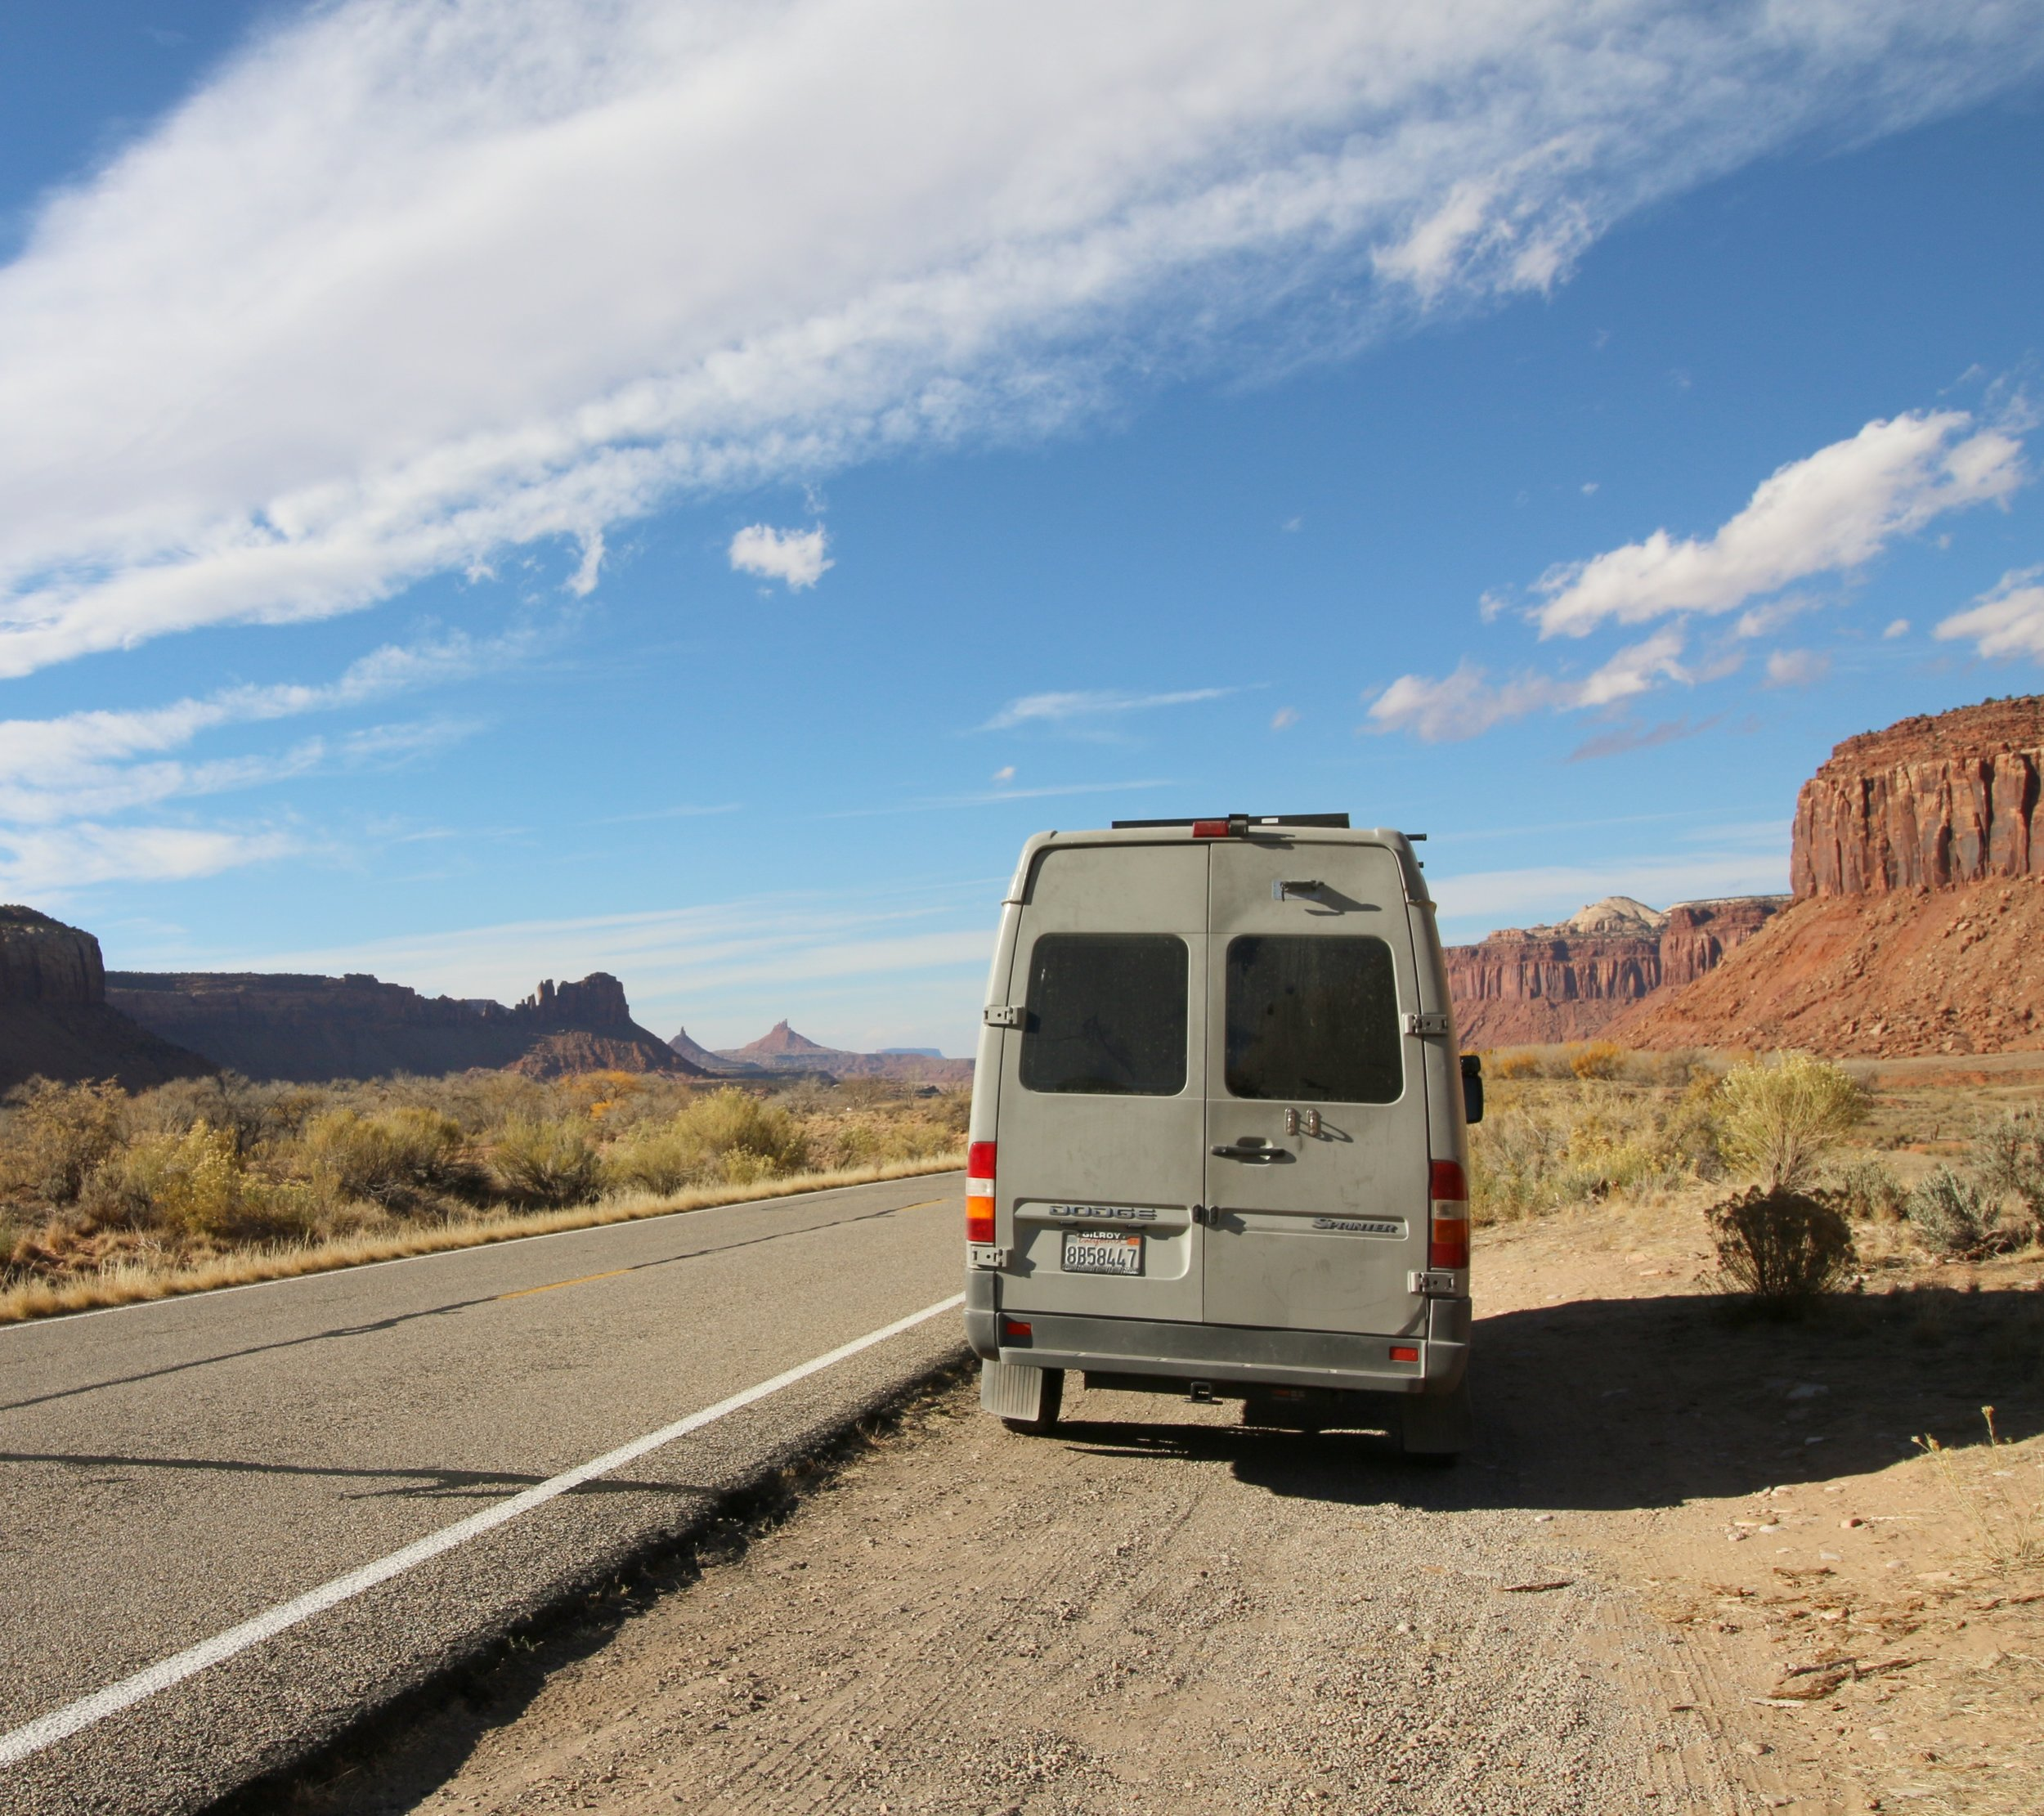 Why I chose vanlife - One Chick Travels